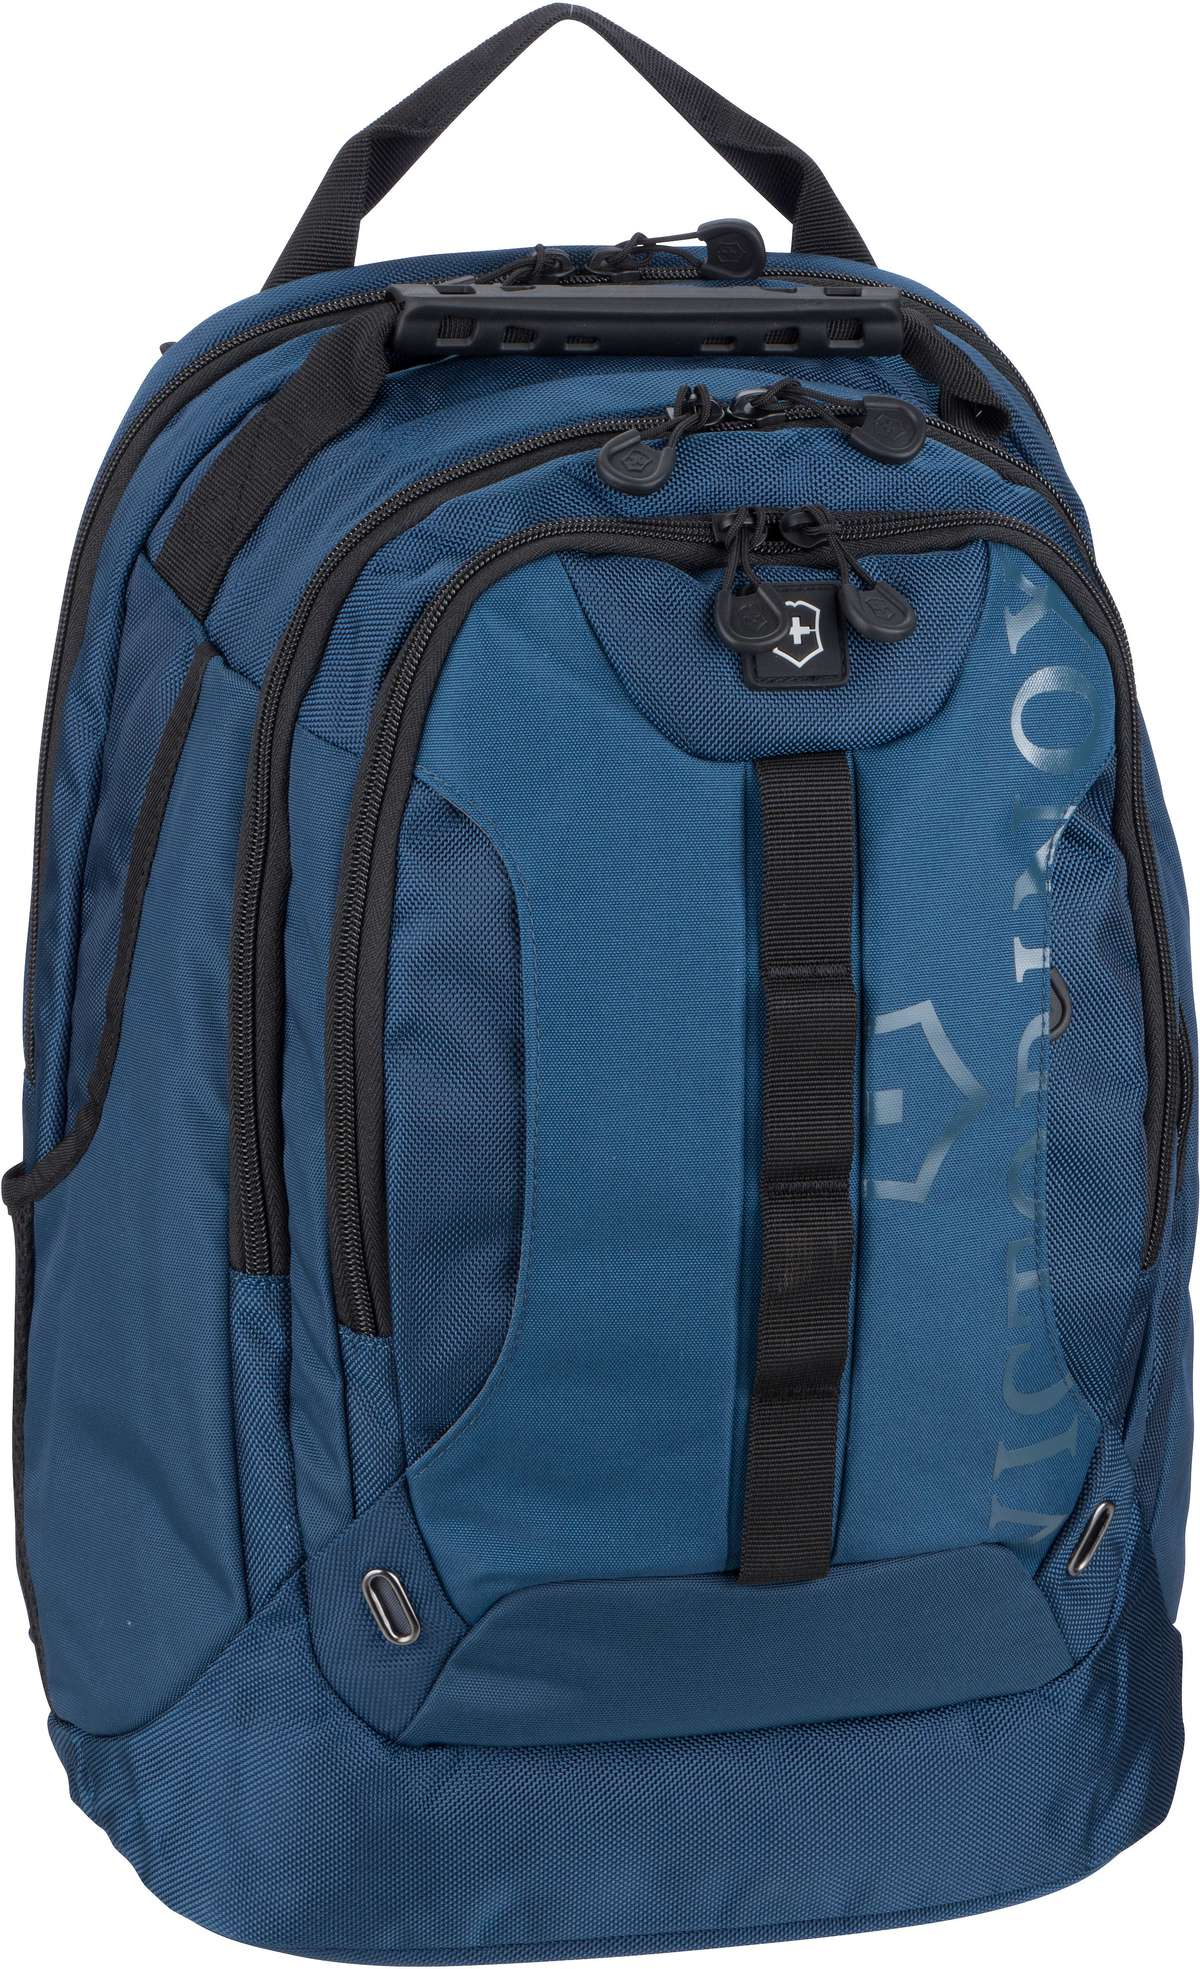 Laptoprucksack Vx Sport Trooper Blue (28 Liter)